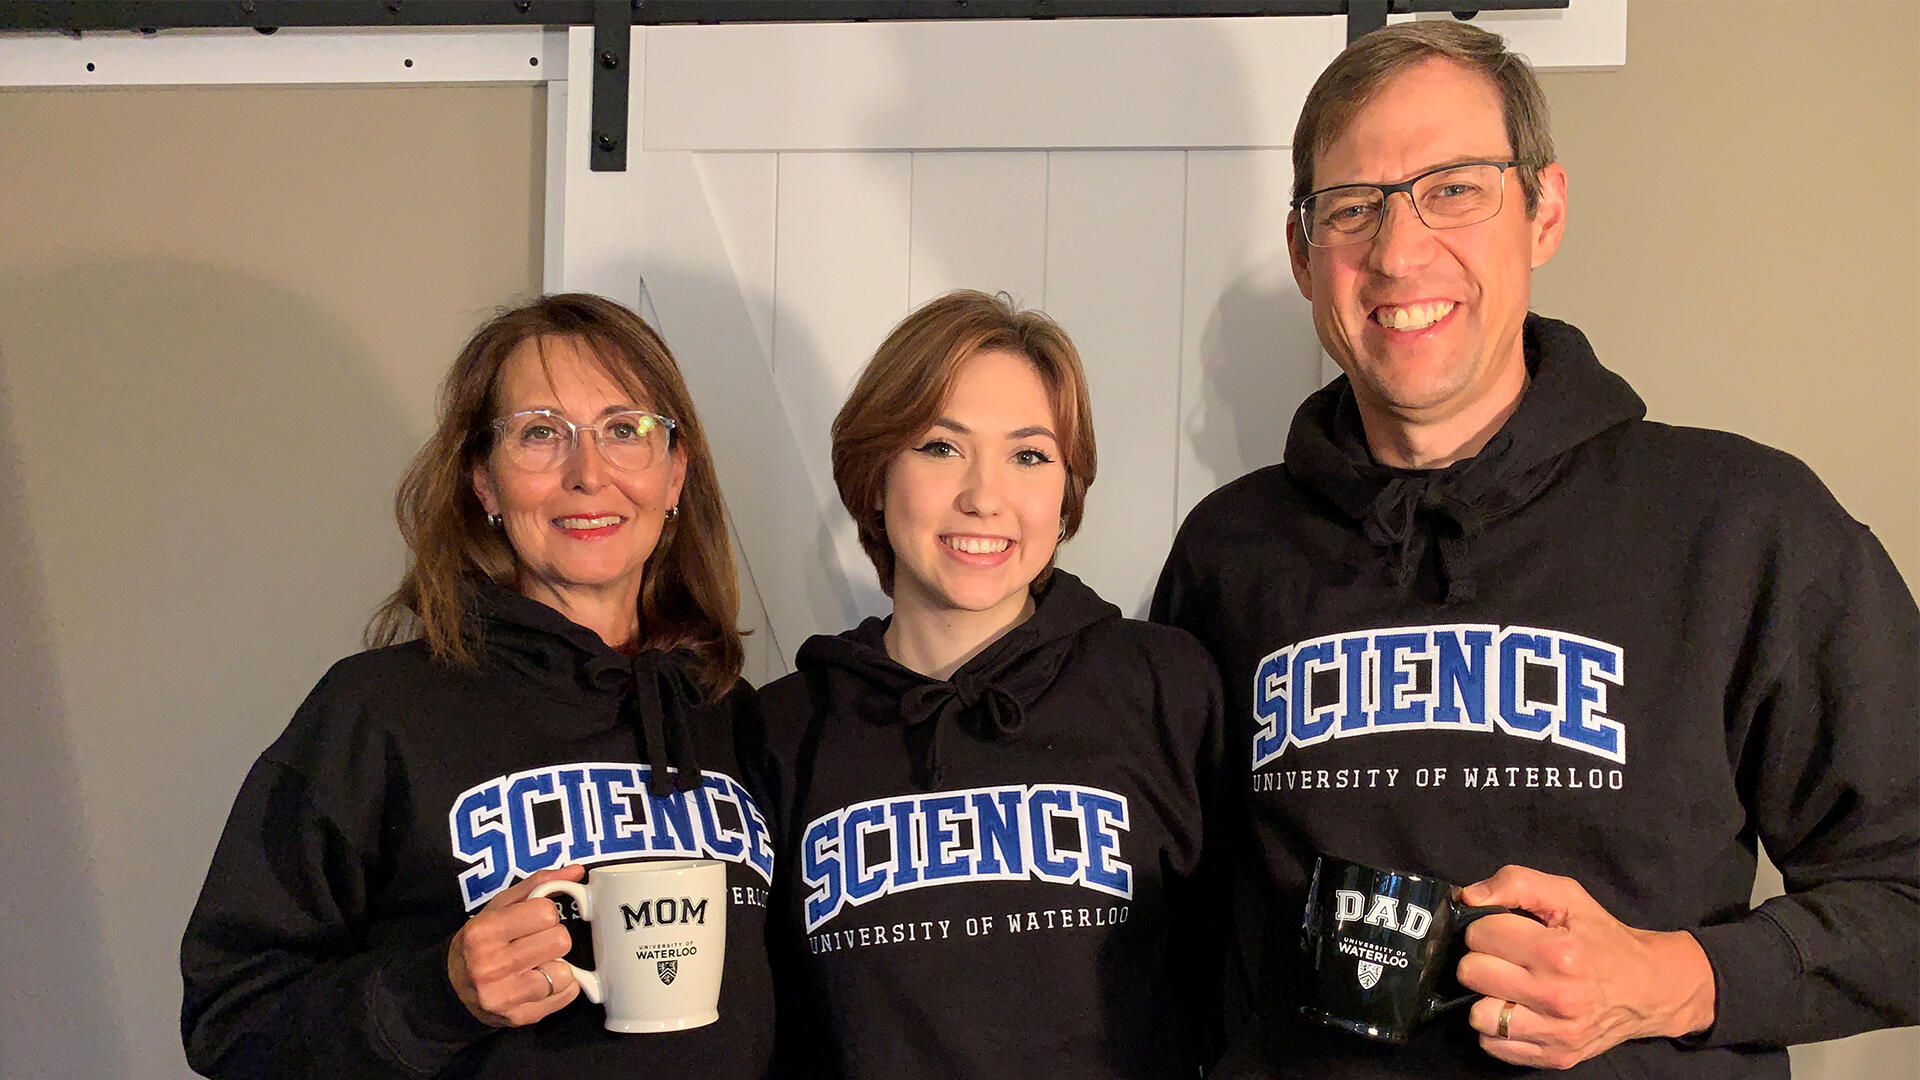 Jocelyn Hadden with her parents Susan and James, all in Waterloo Science sweaters.